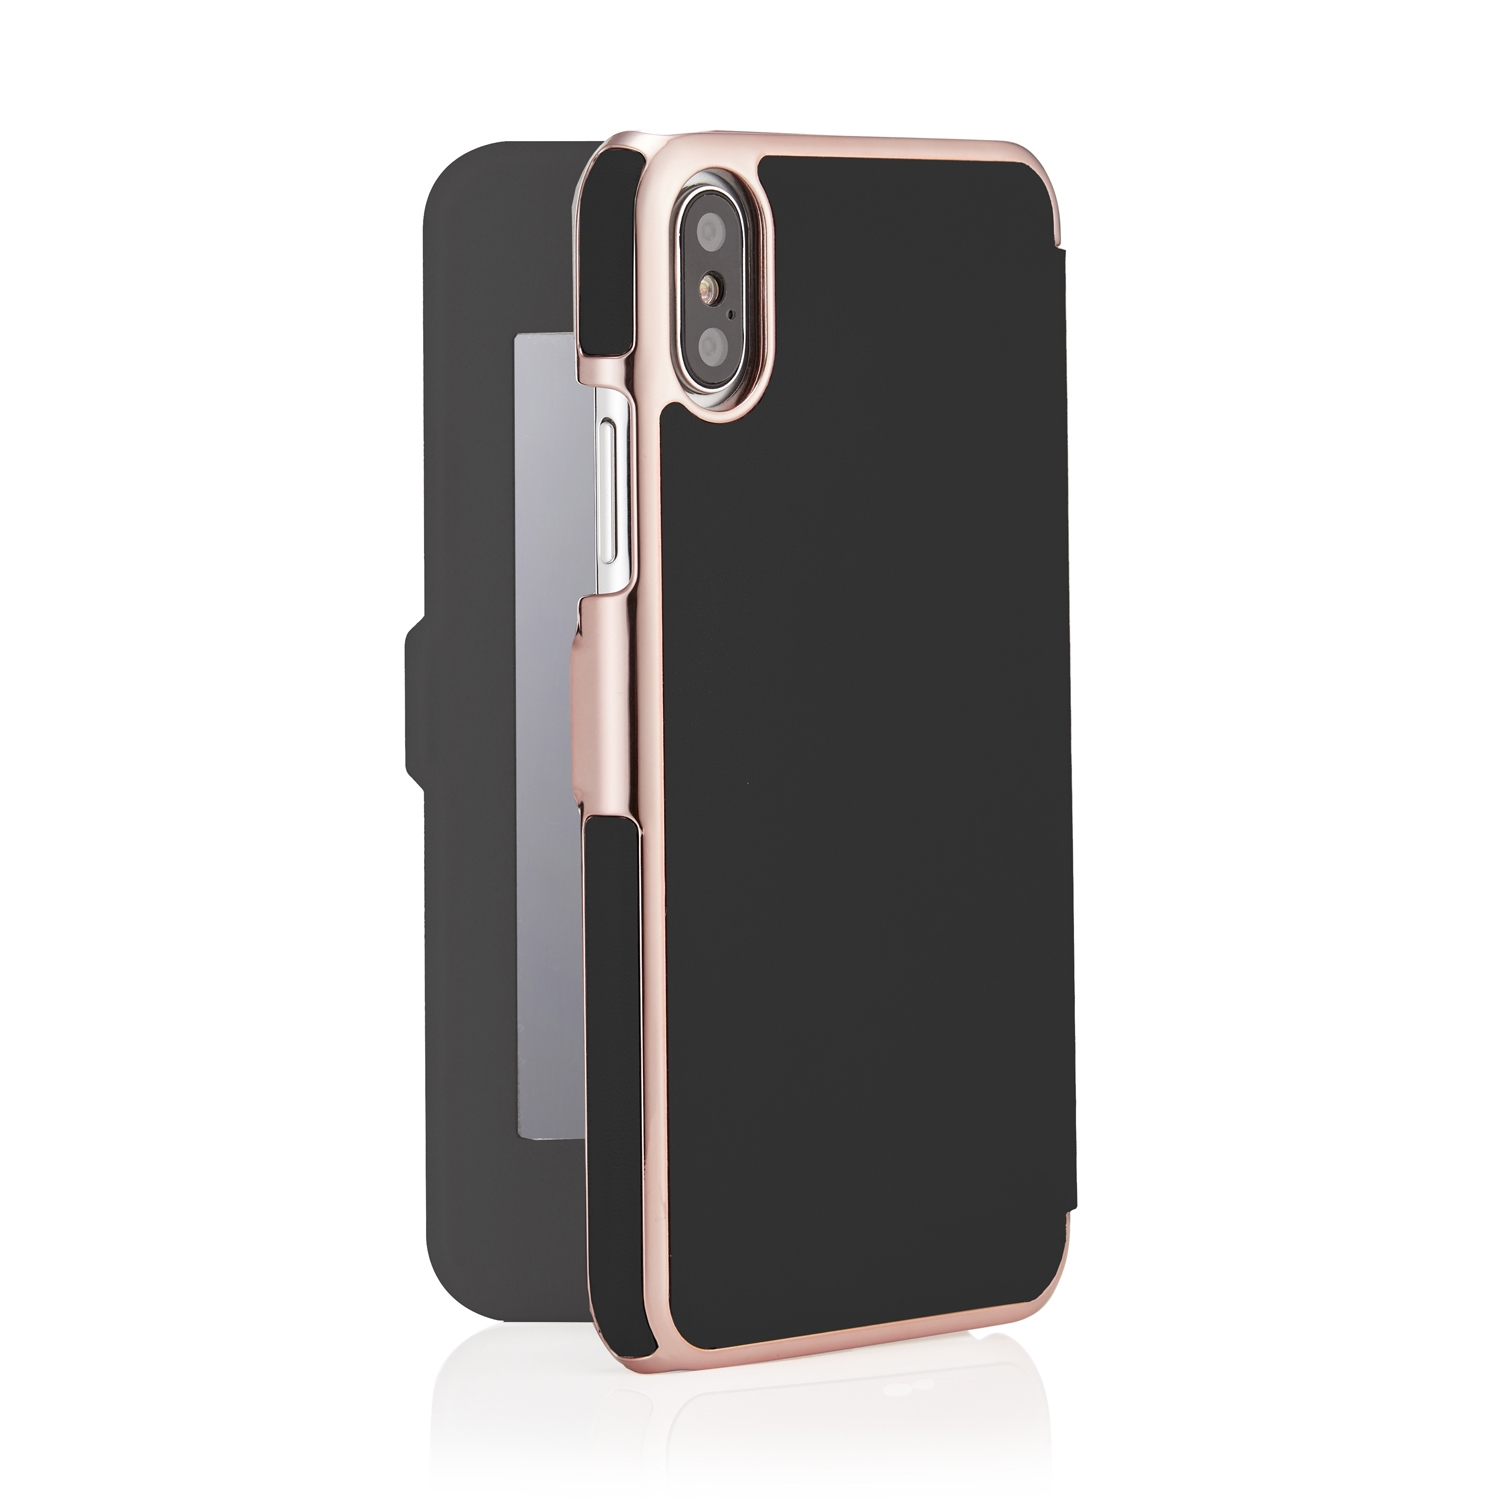 finest selection 53a60 9c100 iPhone X/XS Slim Mirror Case - Black & Rose Gold (Online Exclusive)